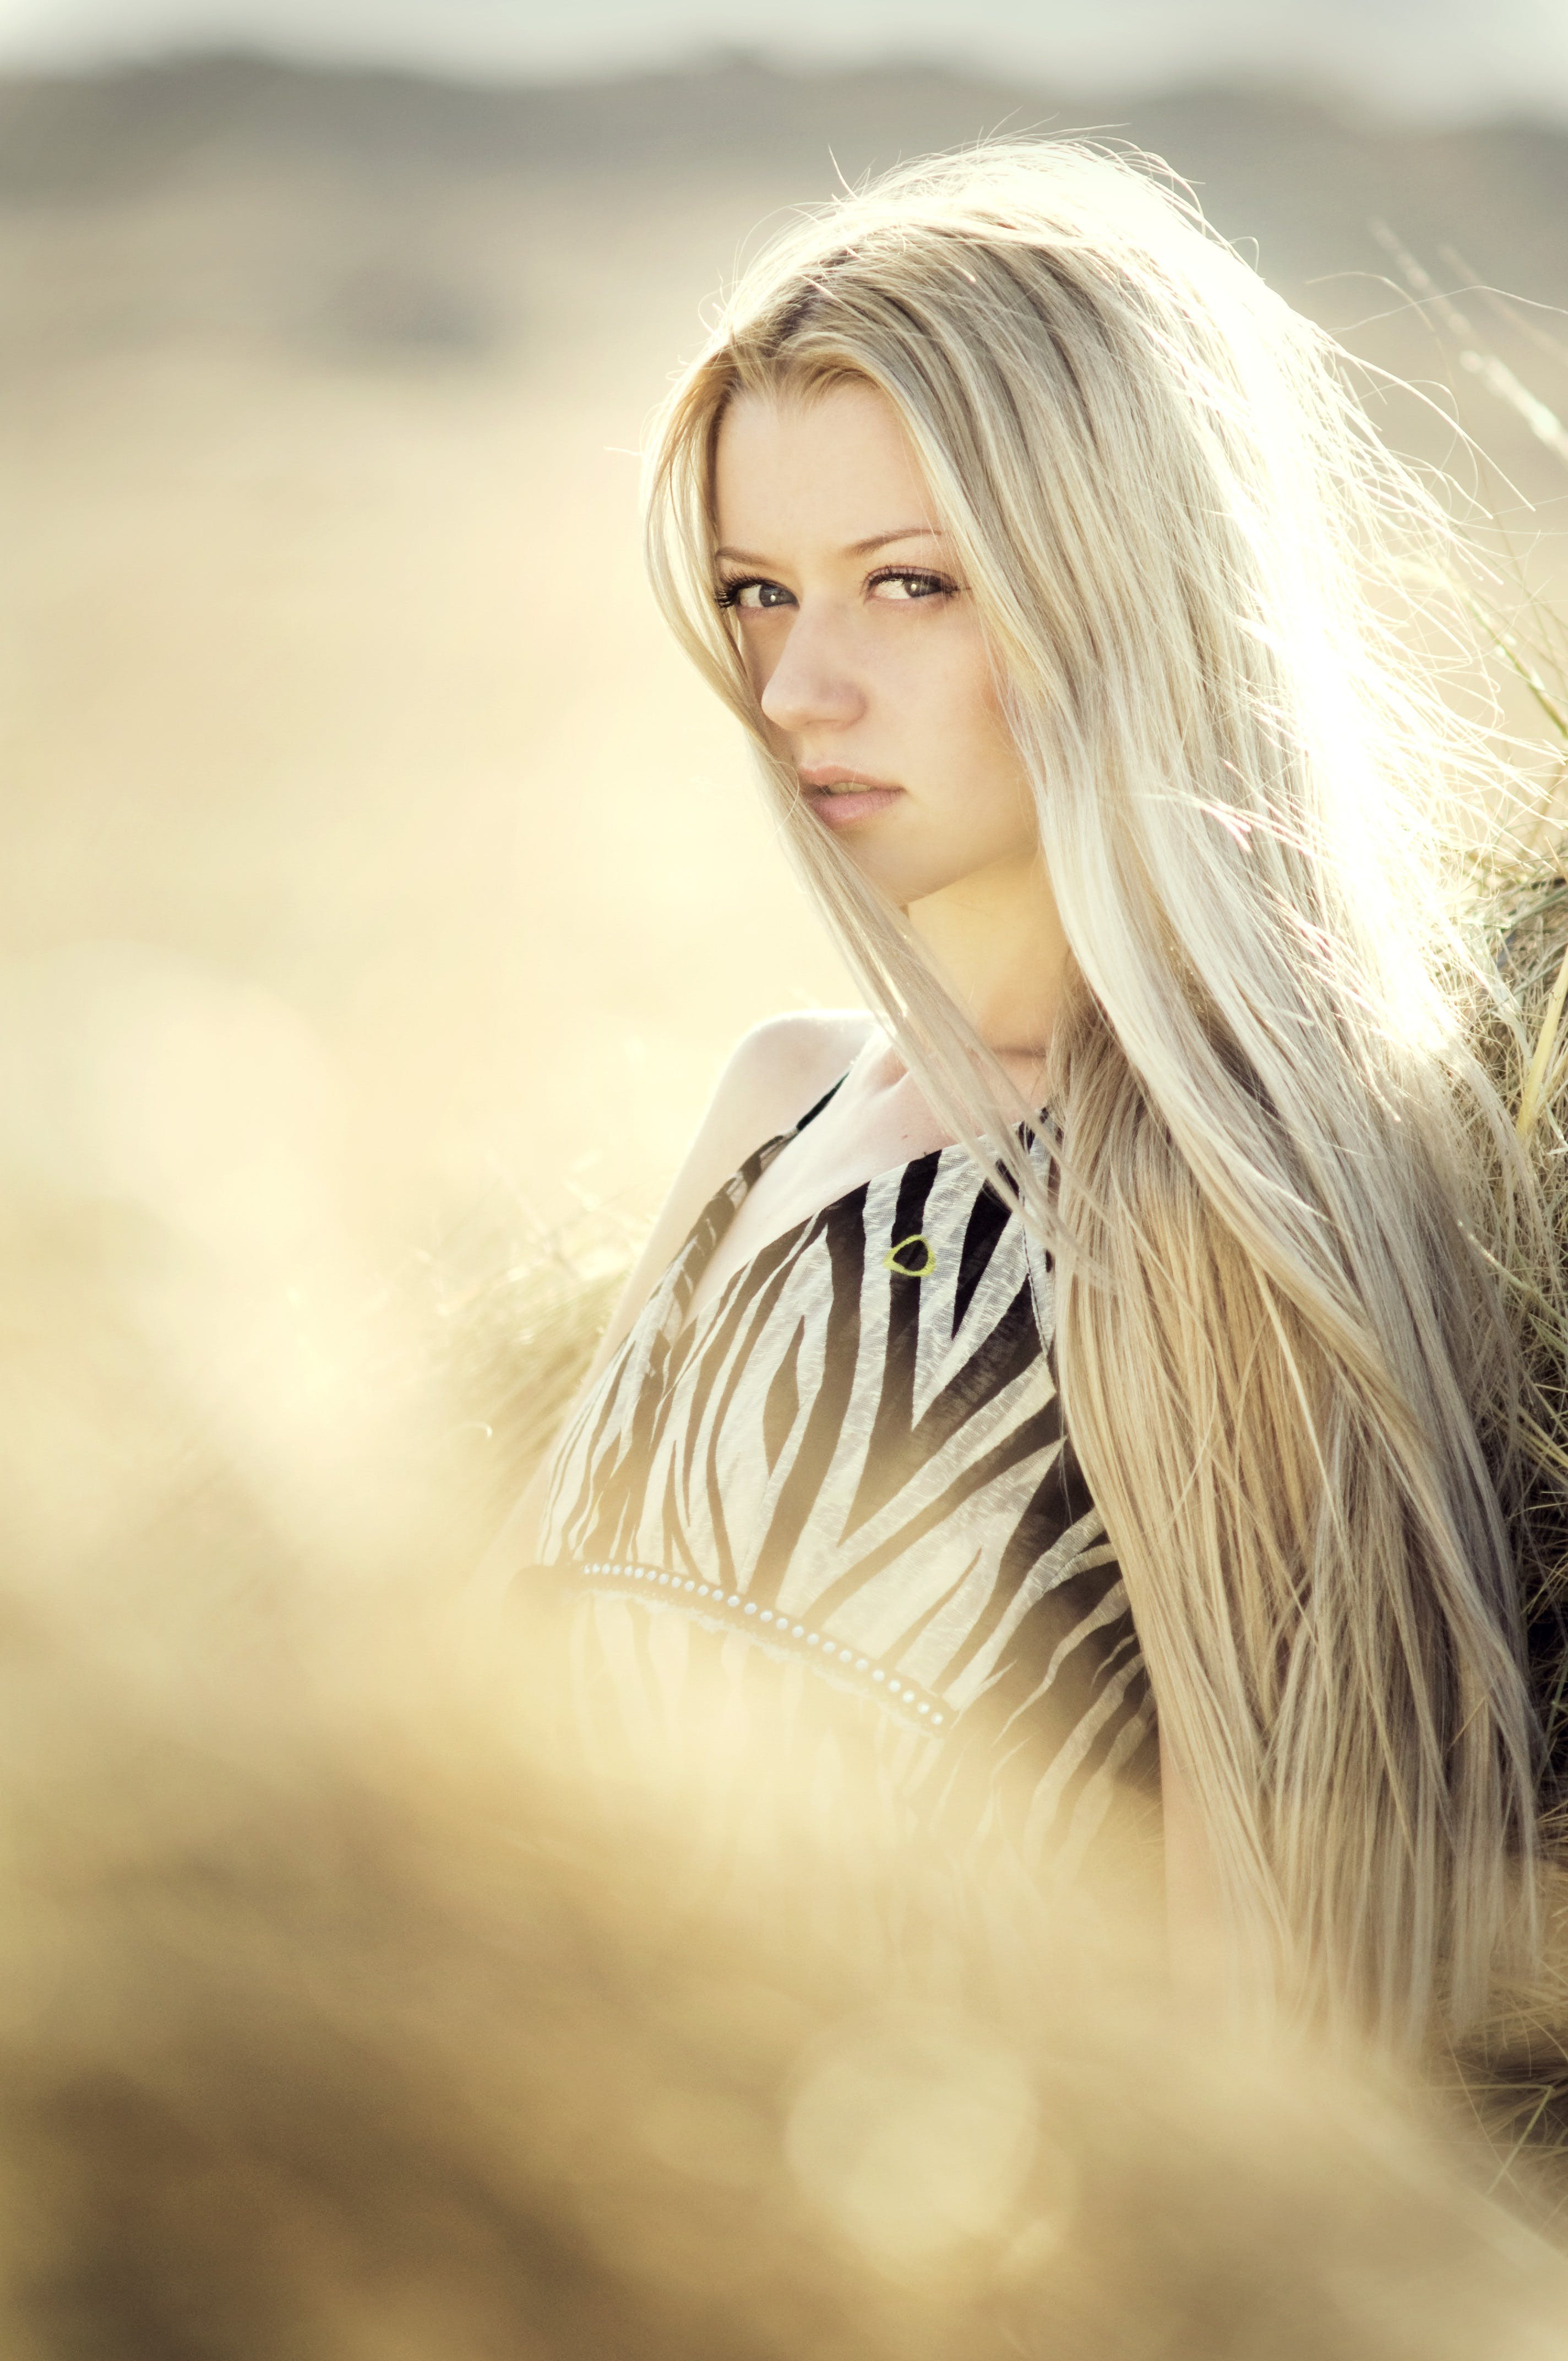 Blonde Haired Woman in Open Field Photoshoot during Daytime